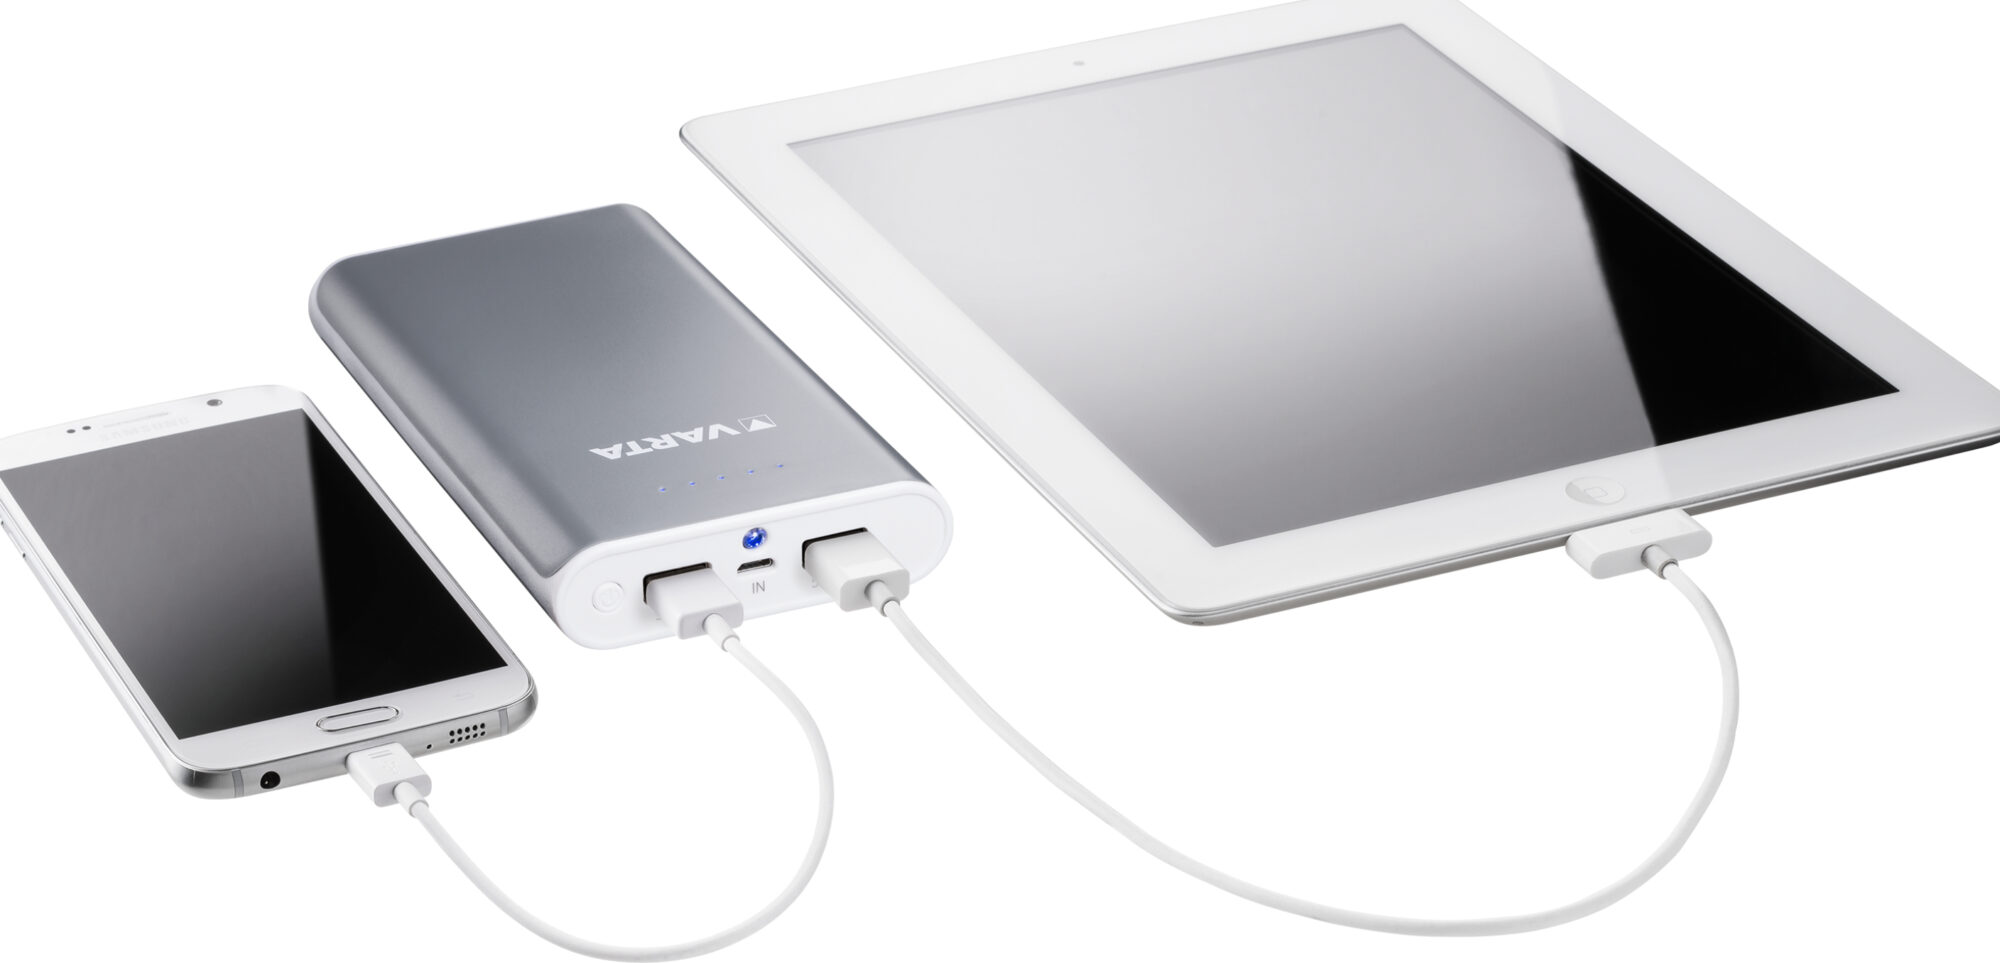 Varta lancia i nuovi Family Power Bank thumbnail